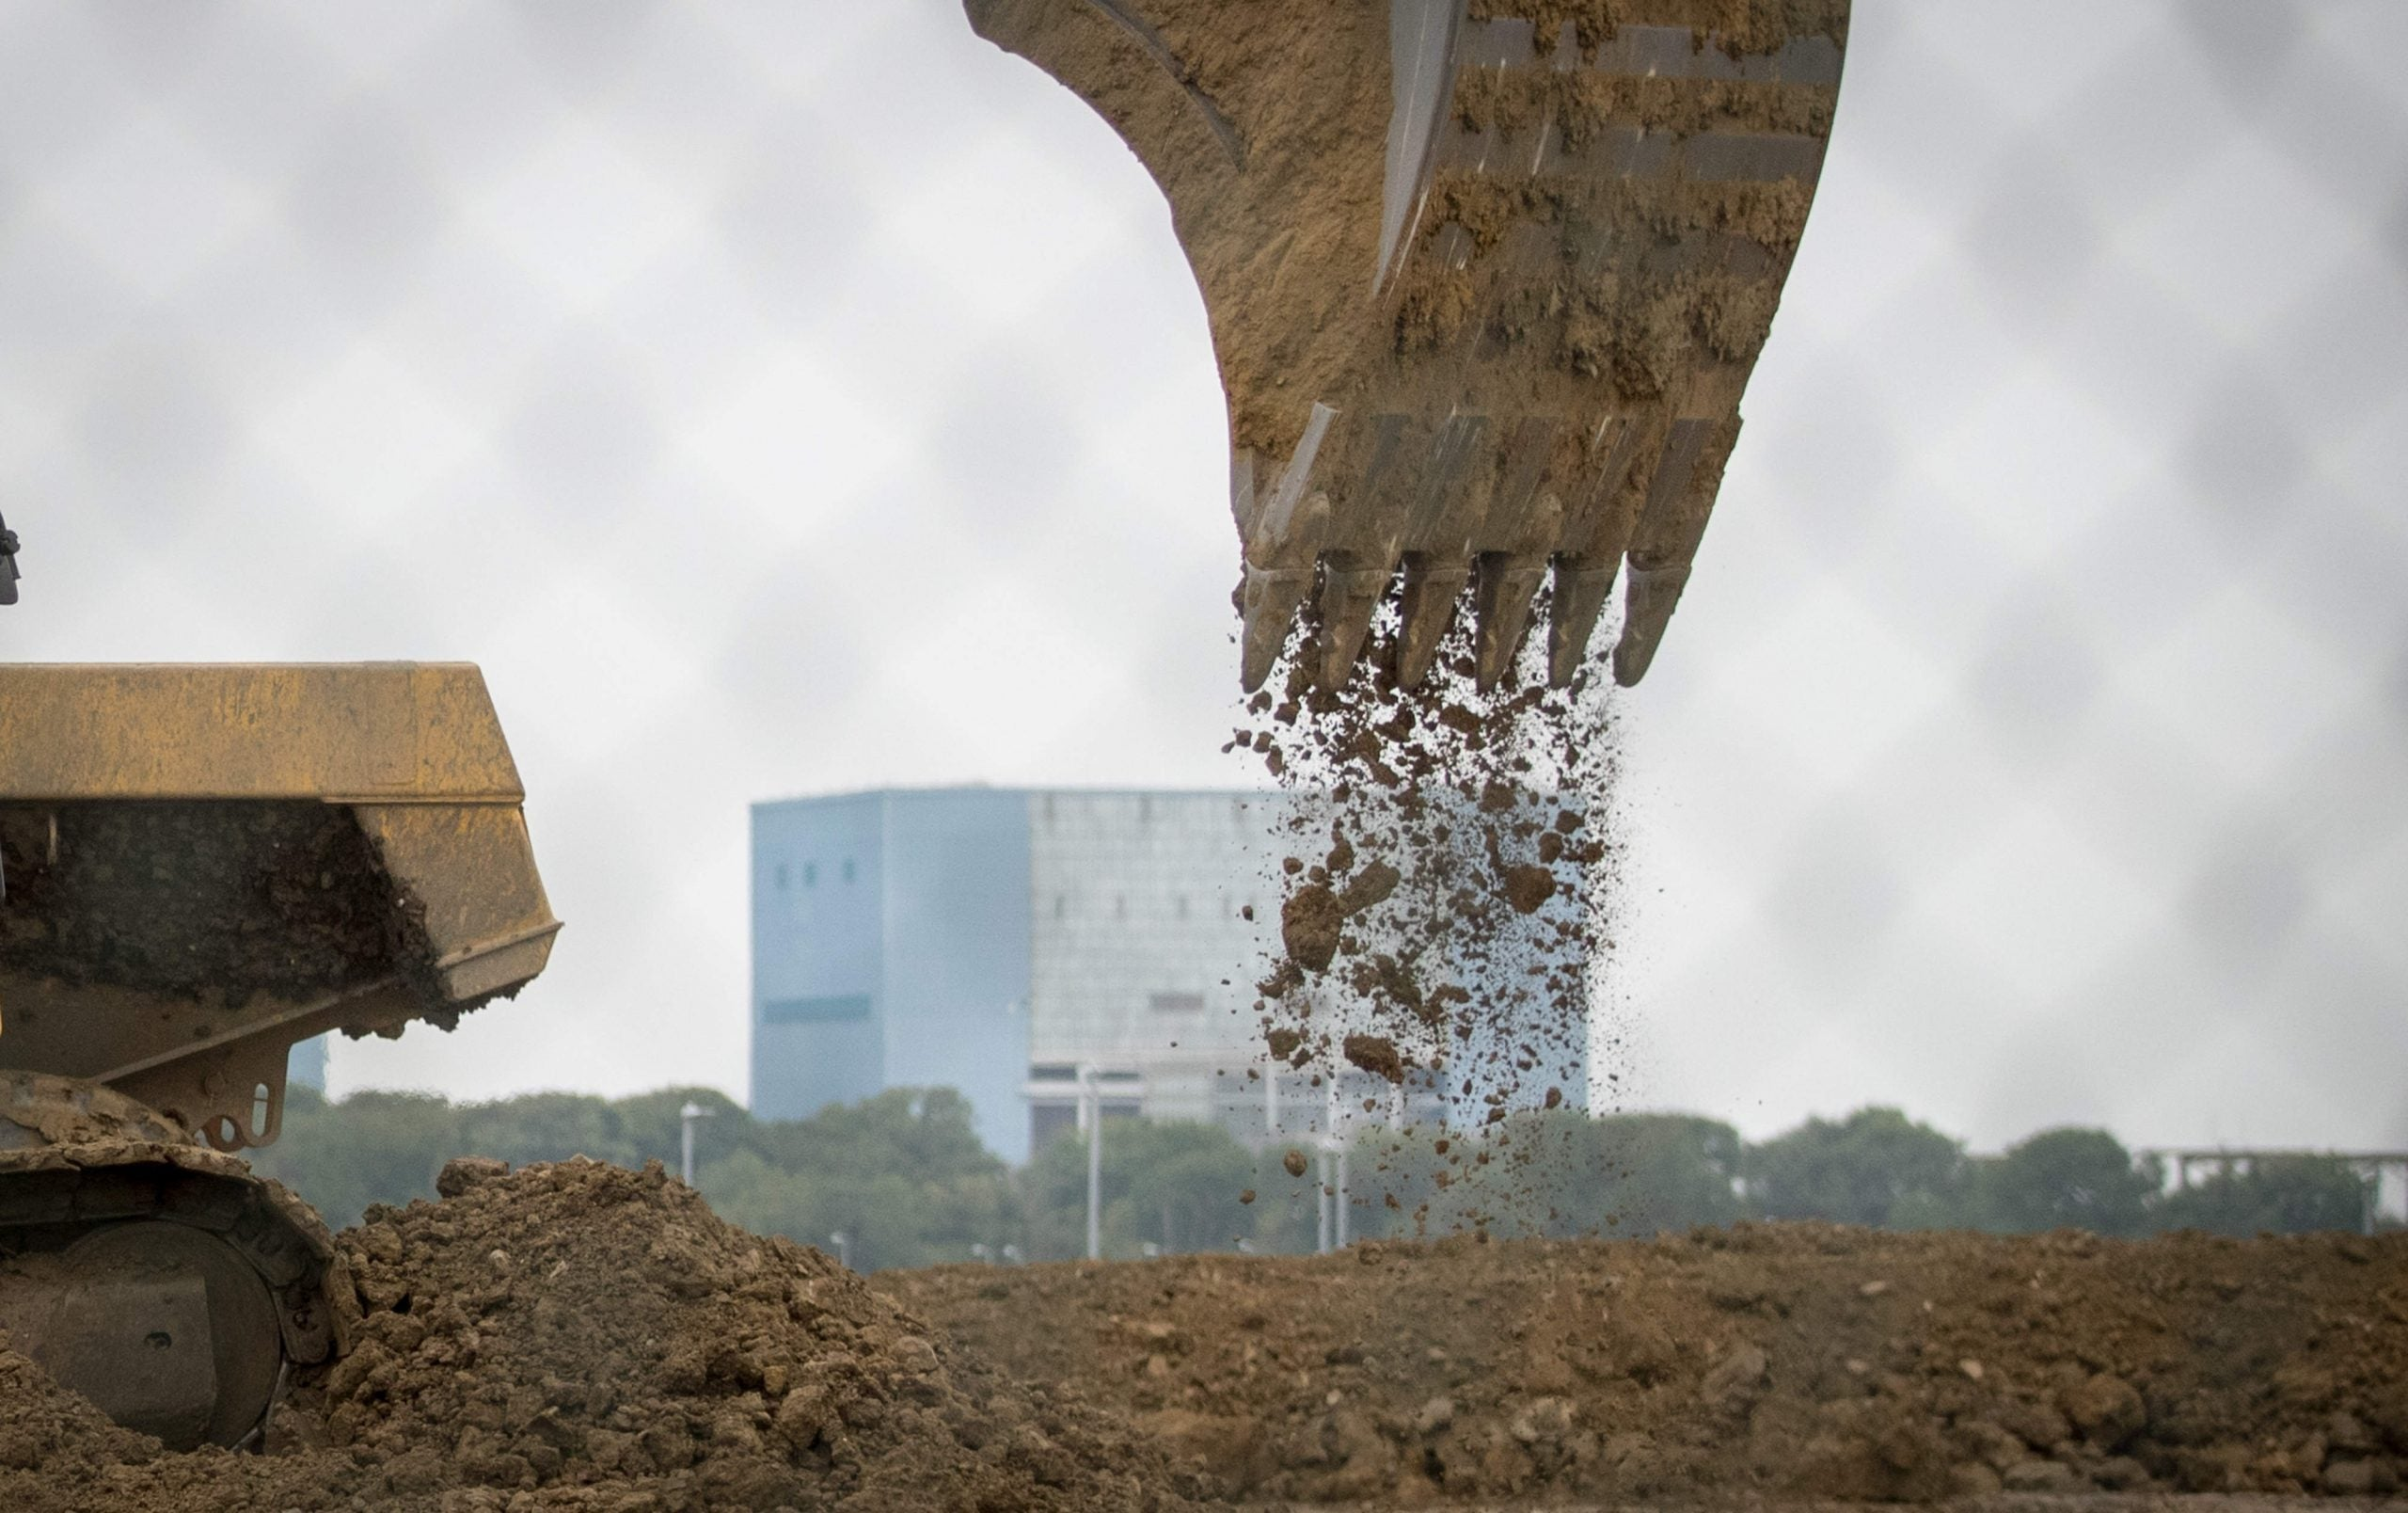 The Hinkley C nuclear power plant will be a costly mistake – we can still stop it